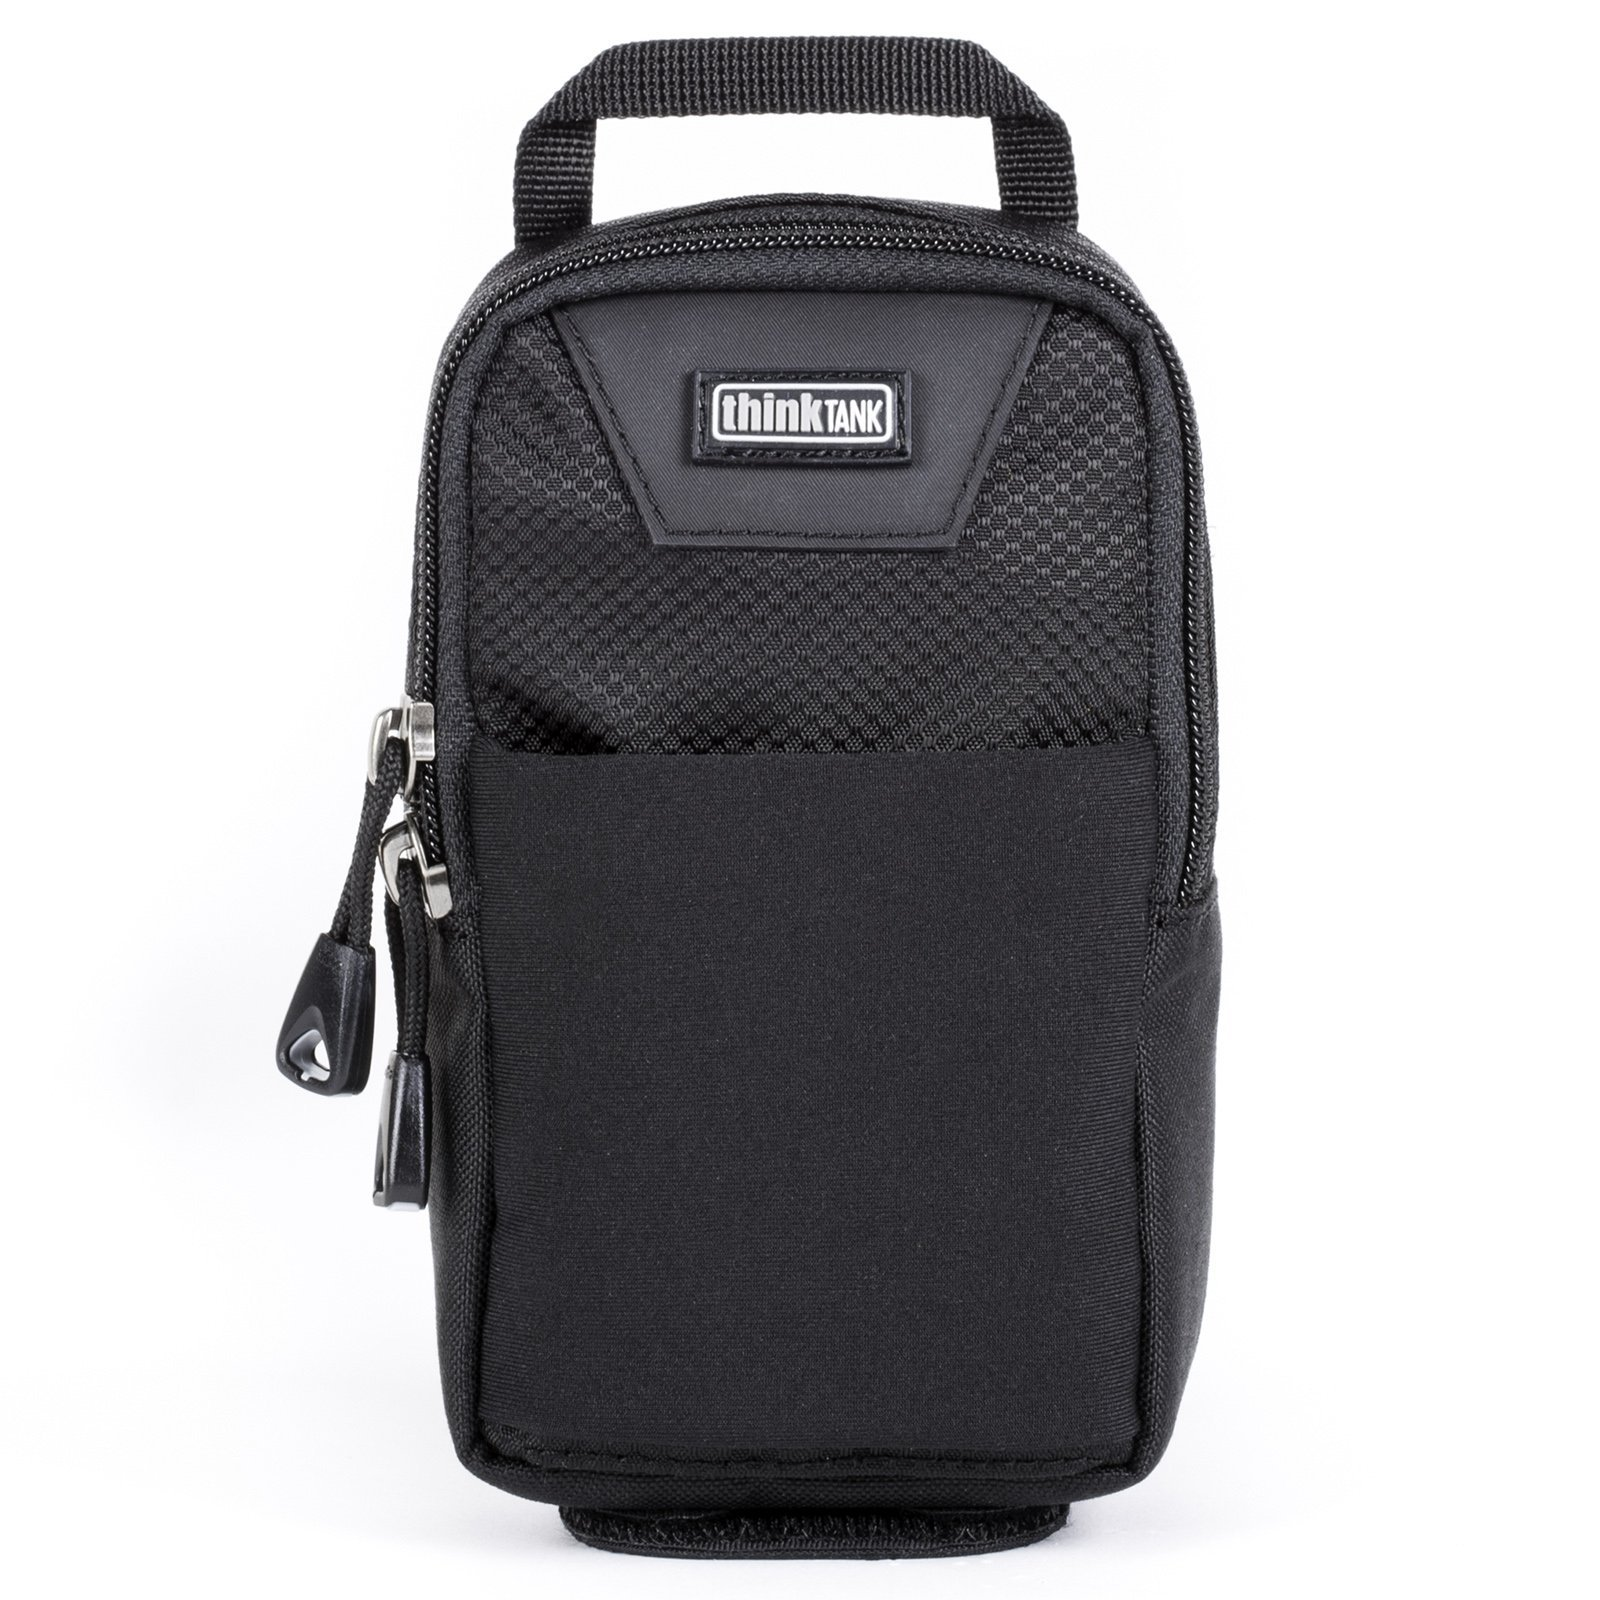 Think Tank Photo Little Stuff It! V3.0 Compact Camera and Accessories Pouch (Black) by Think Tank